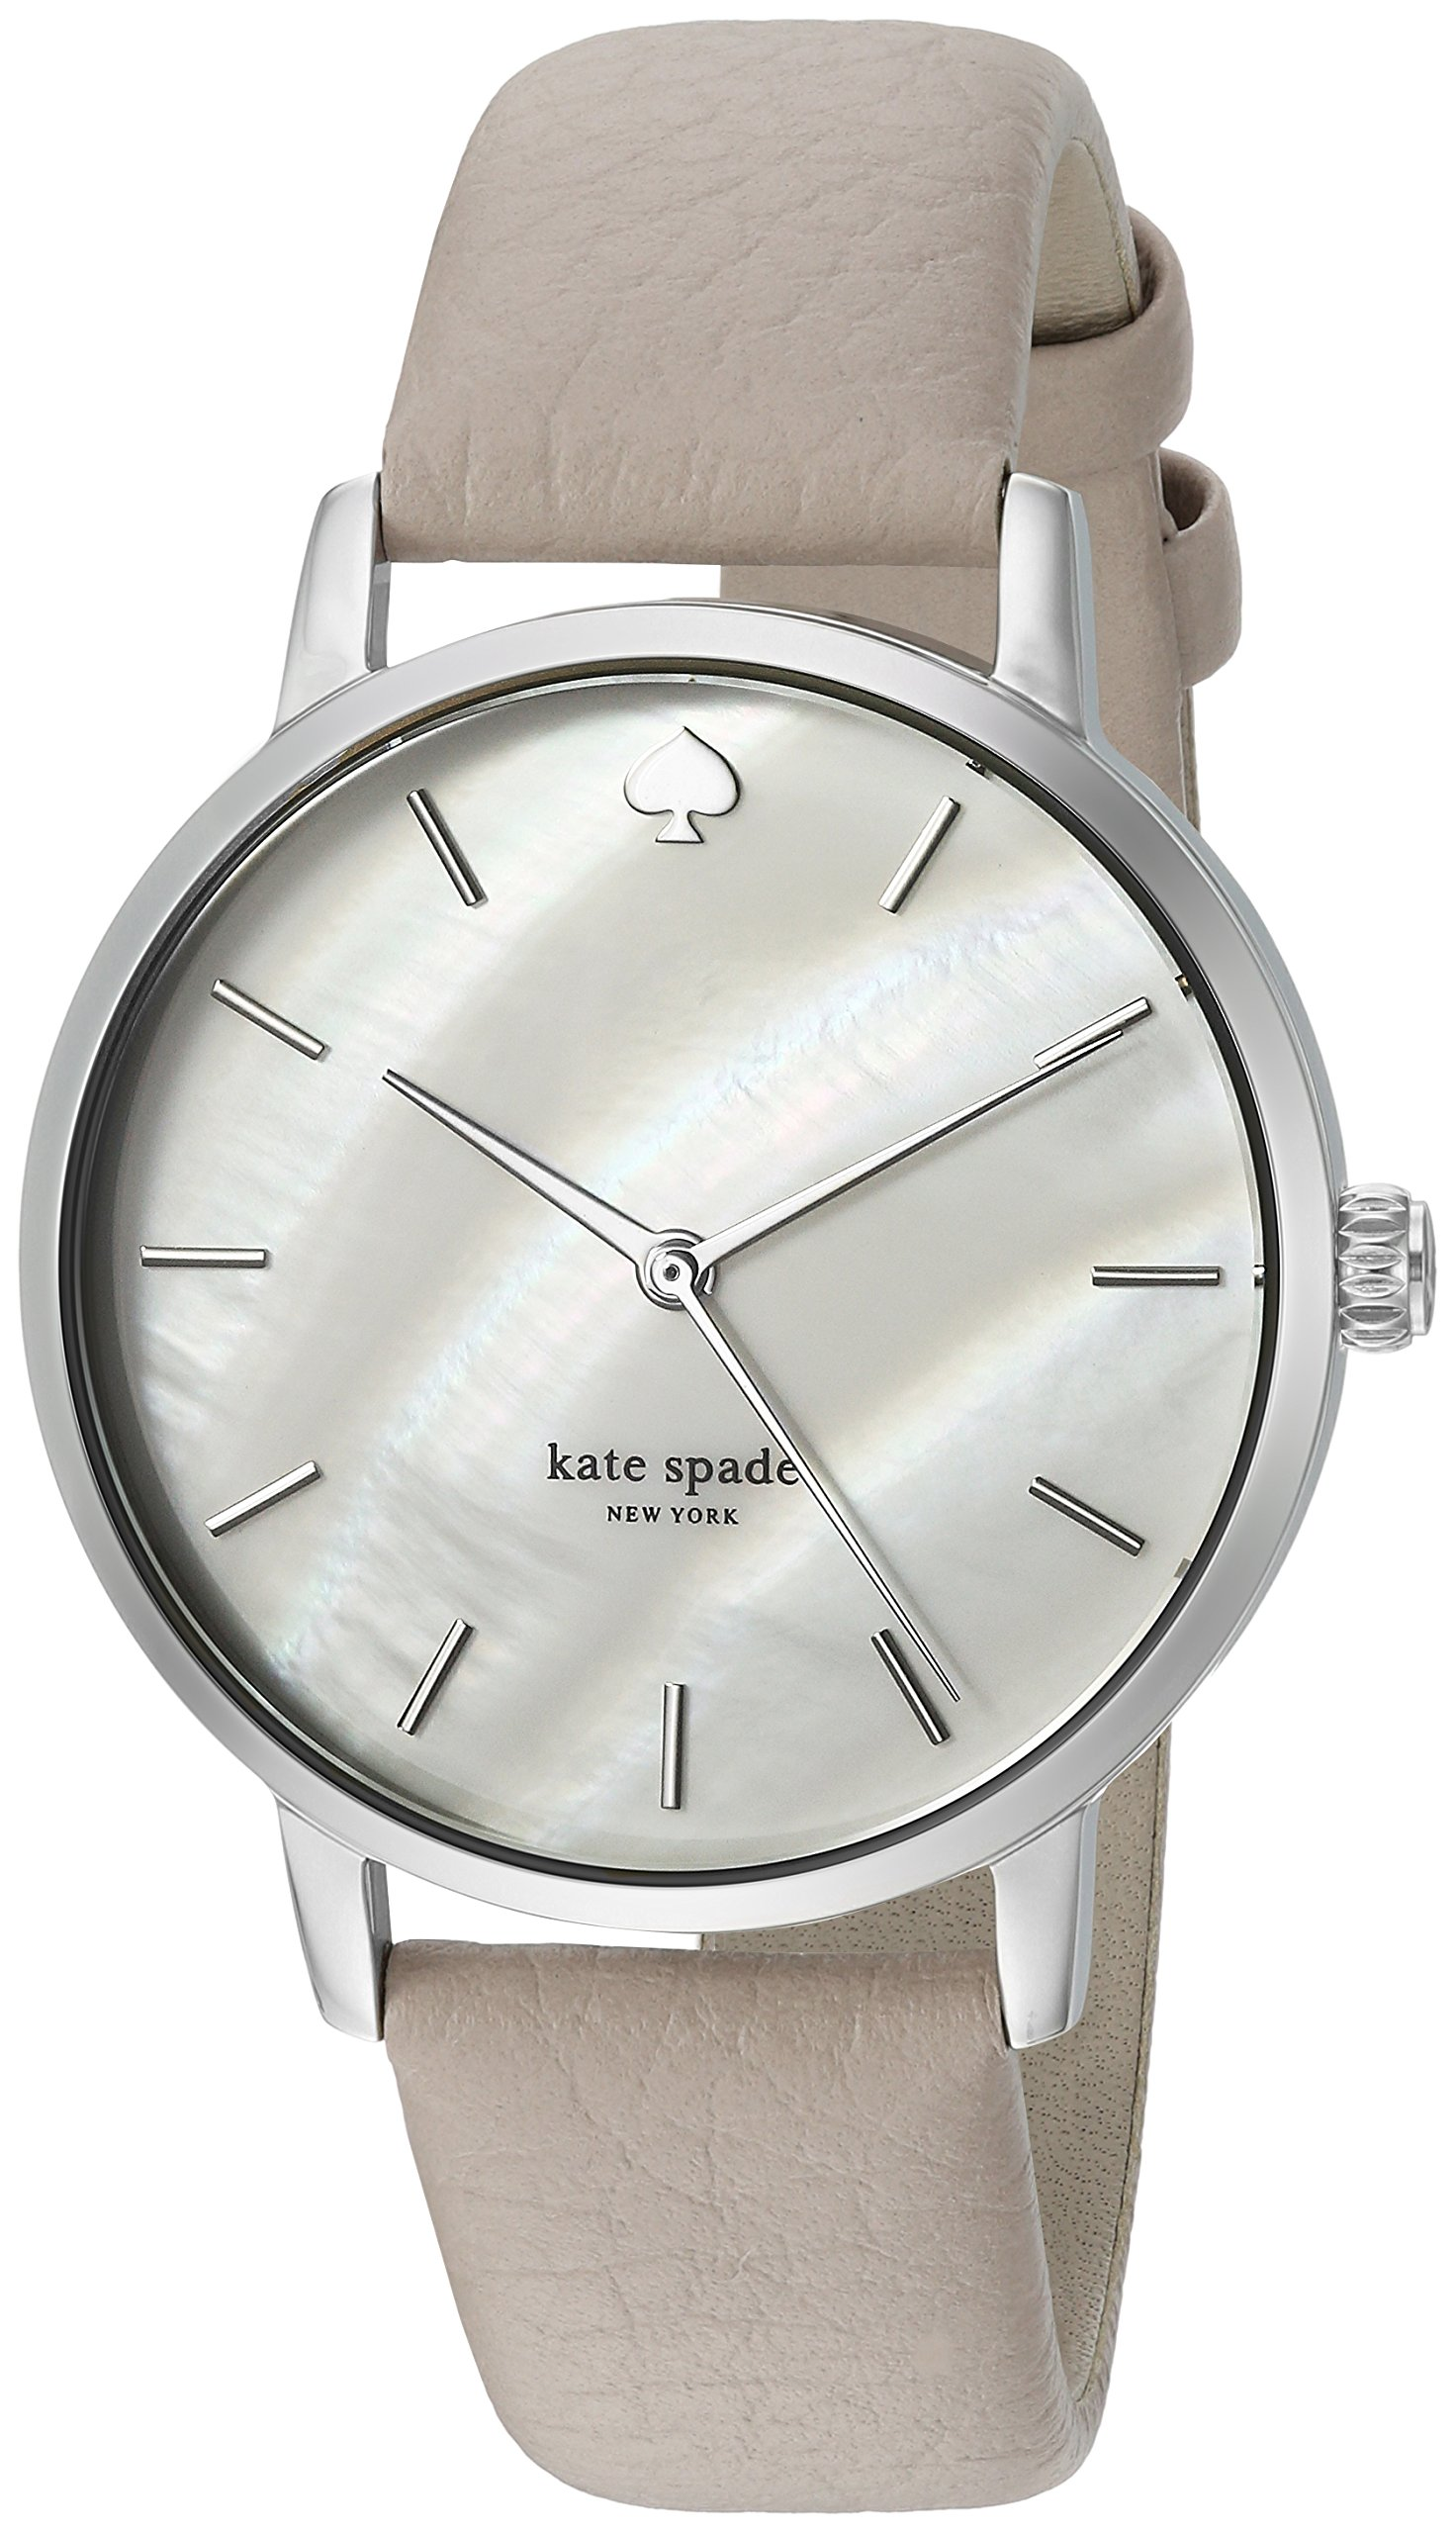 kate spade new york Women's 'Metro' Quartz Stainless Steel and Leather Casual Watch, Color:Grey (Model: KSW1141)